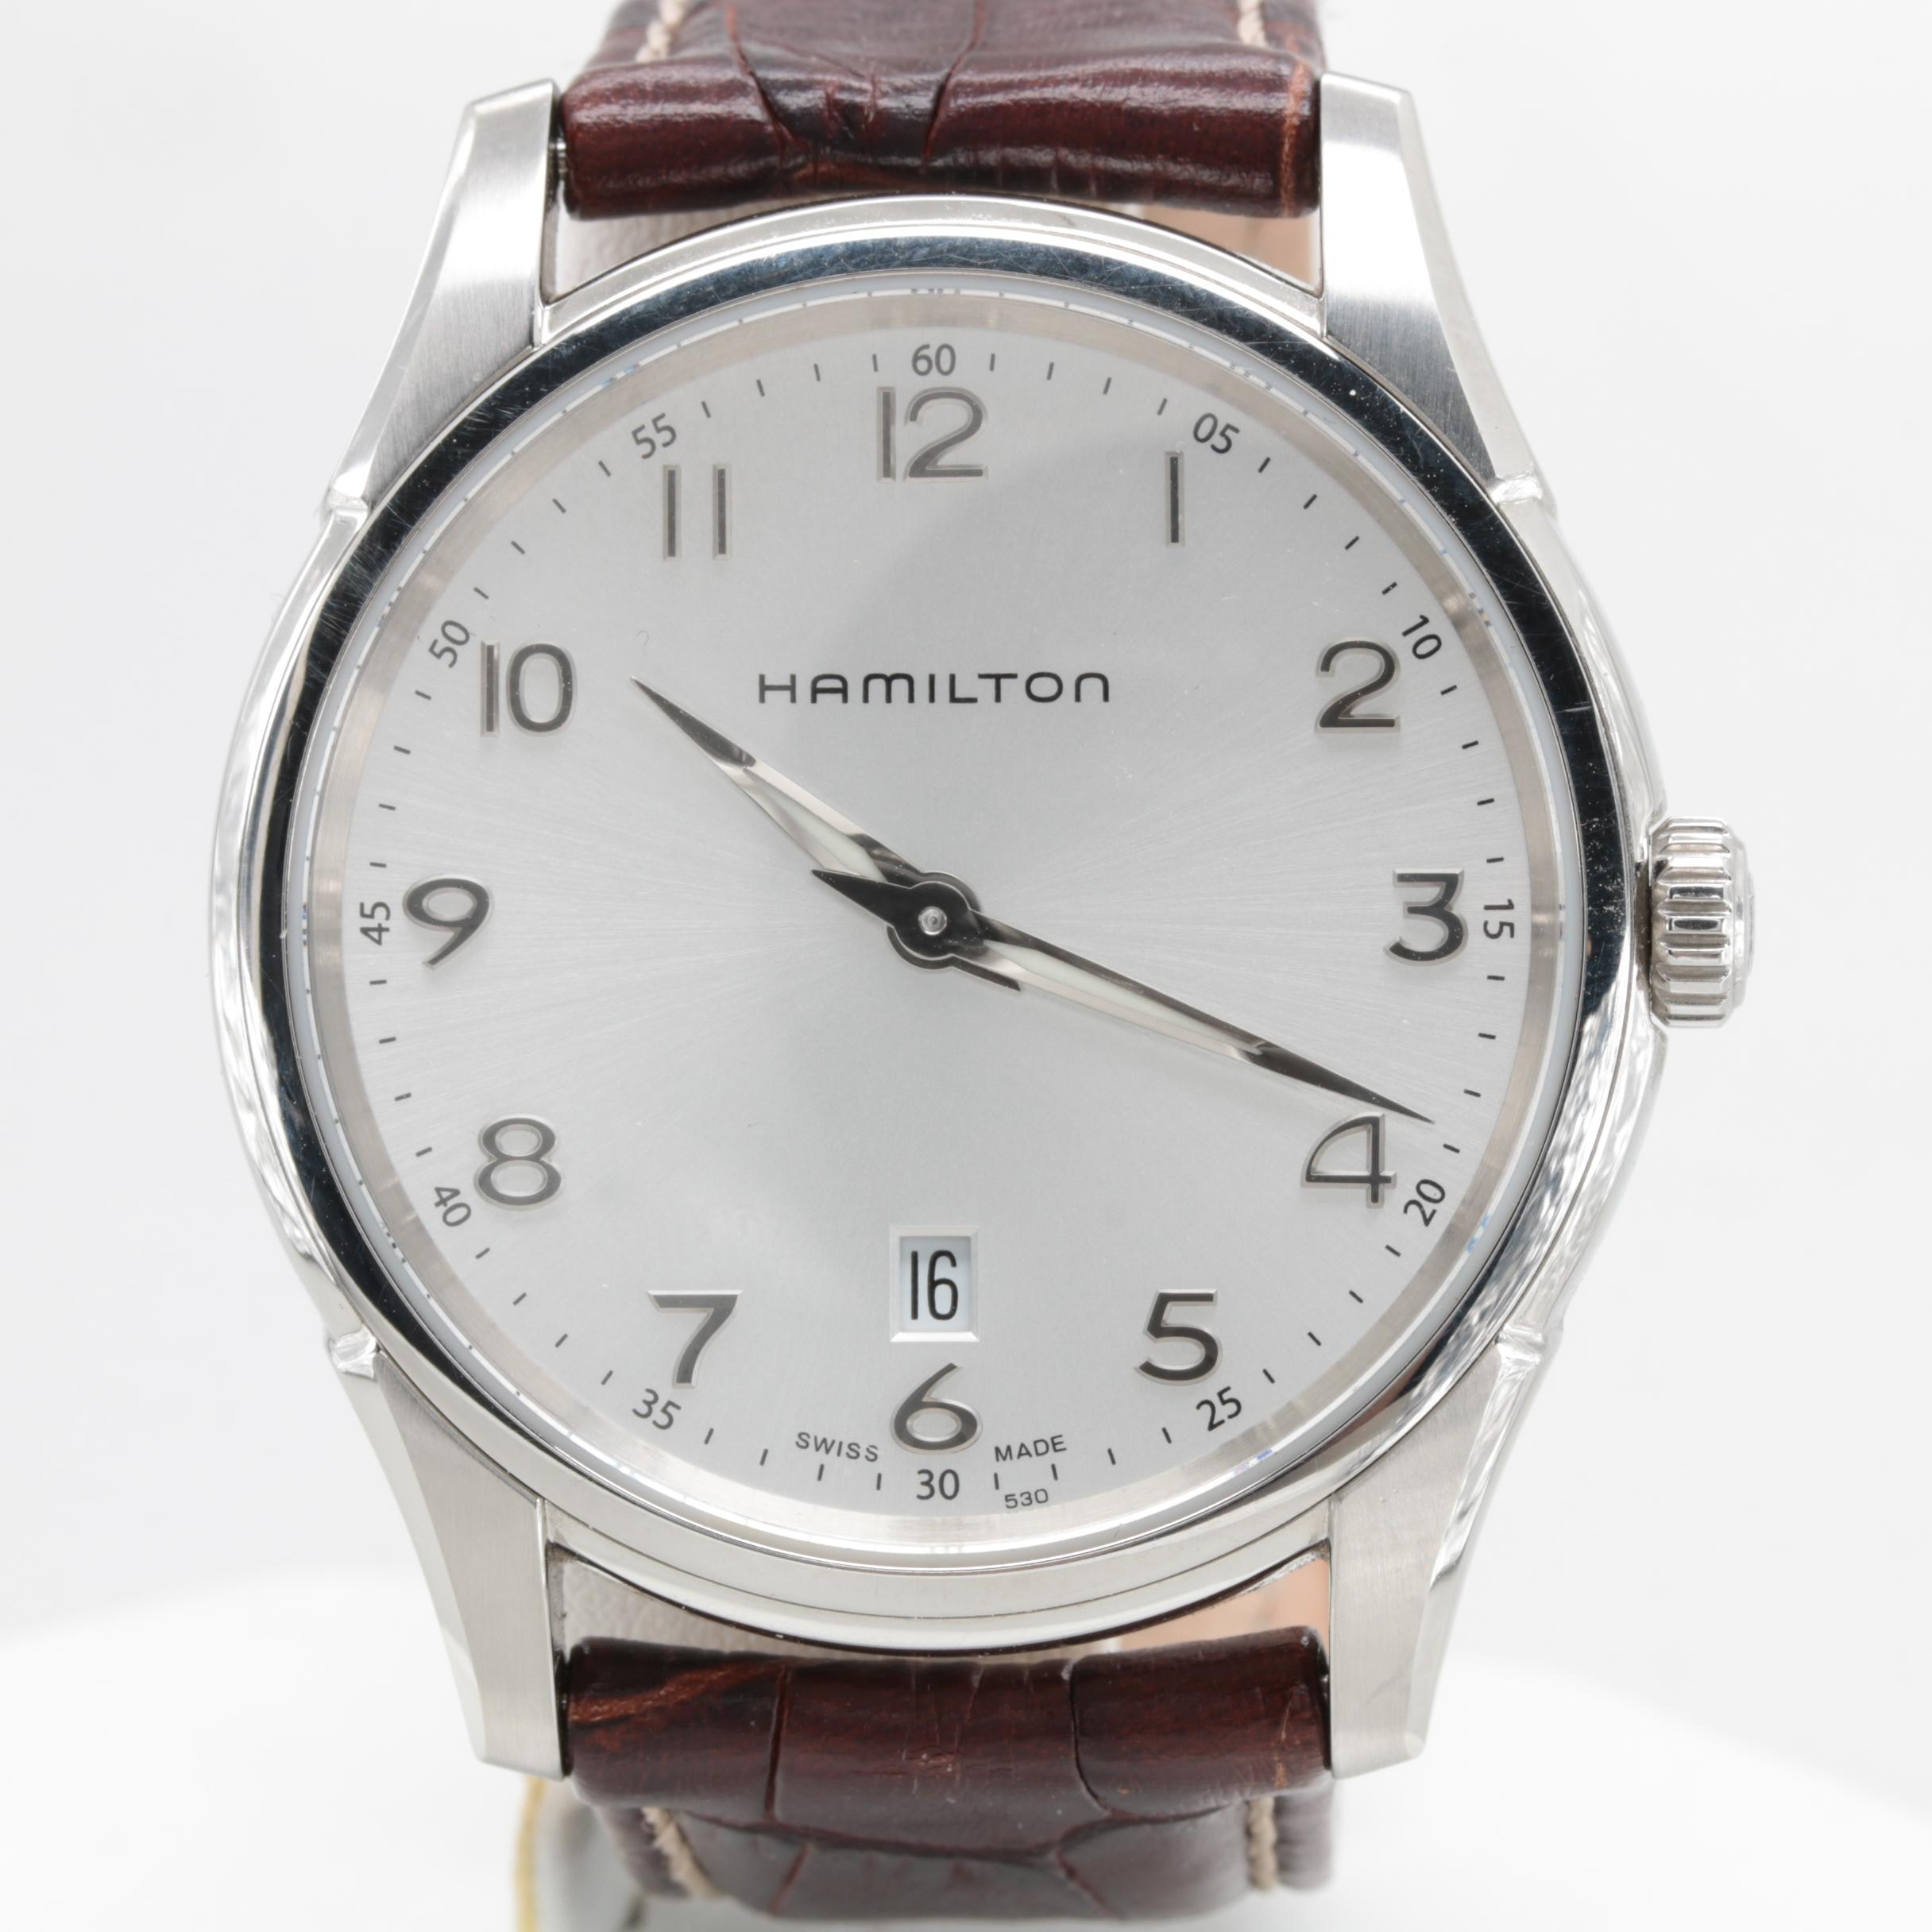 Hamilton Stainless Steel and Leather Wristwatch